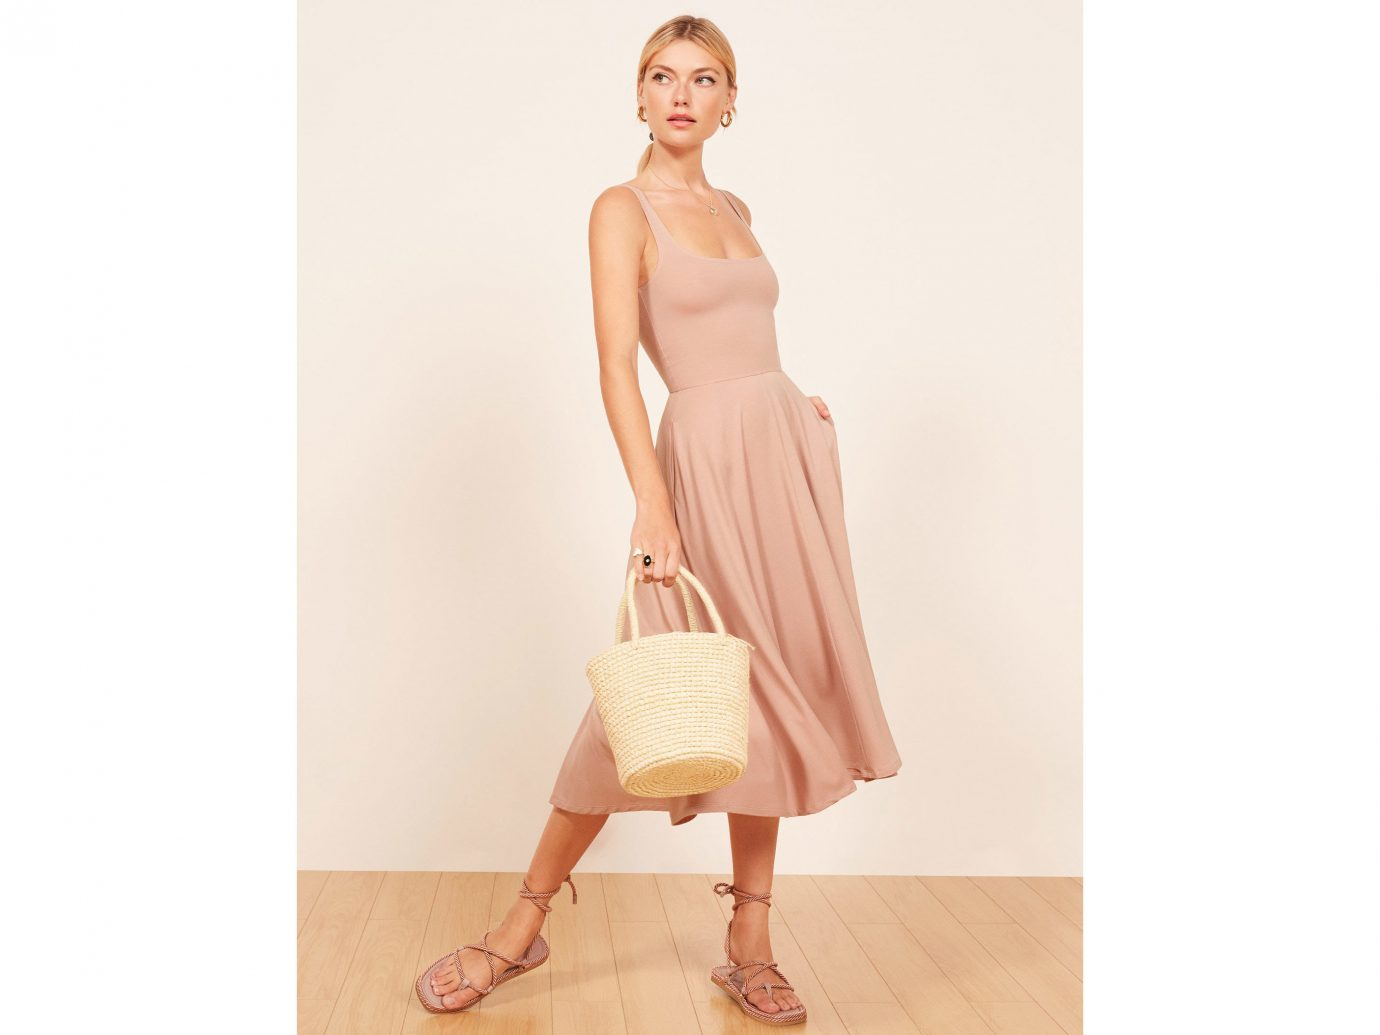 Style + Design Travel Shop wall clothing fashion model indoor shoulder dress shoe day dress peach supermodel beige cocktail dress joint neck waist posing tan